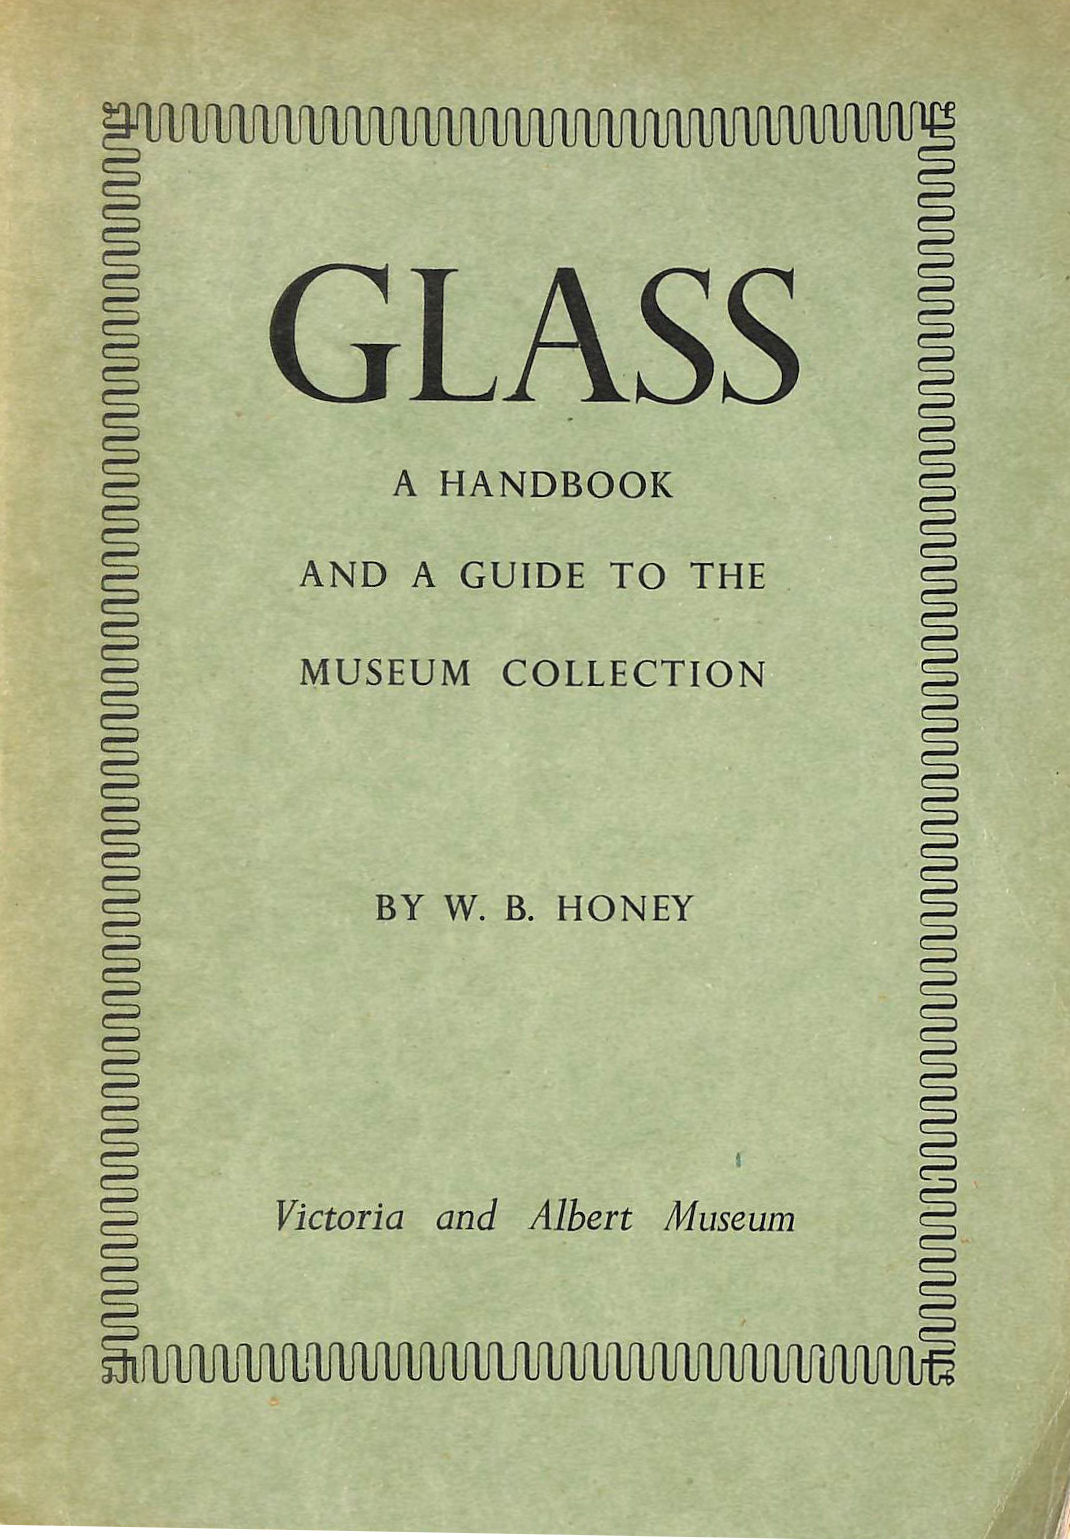 Image for VICTORIA AND ALBERT MUSEUM: GLASS: A HANDBOOK FOR THE STUDY OF GLASS VESSELS OF ALL PERIODS AND COUNTRIES AND A GUIDE TO THE MUSEUM COLLECTION.